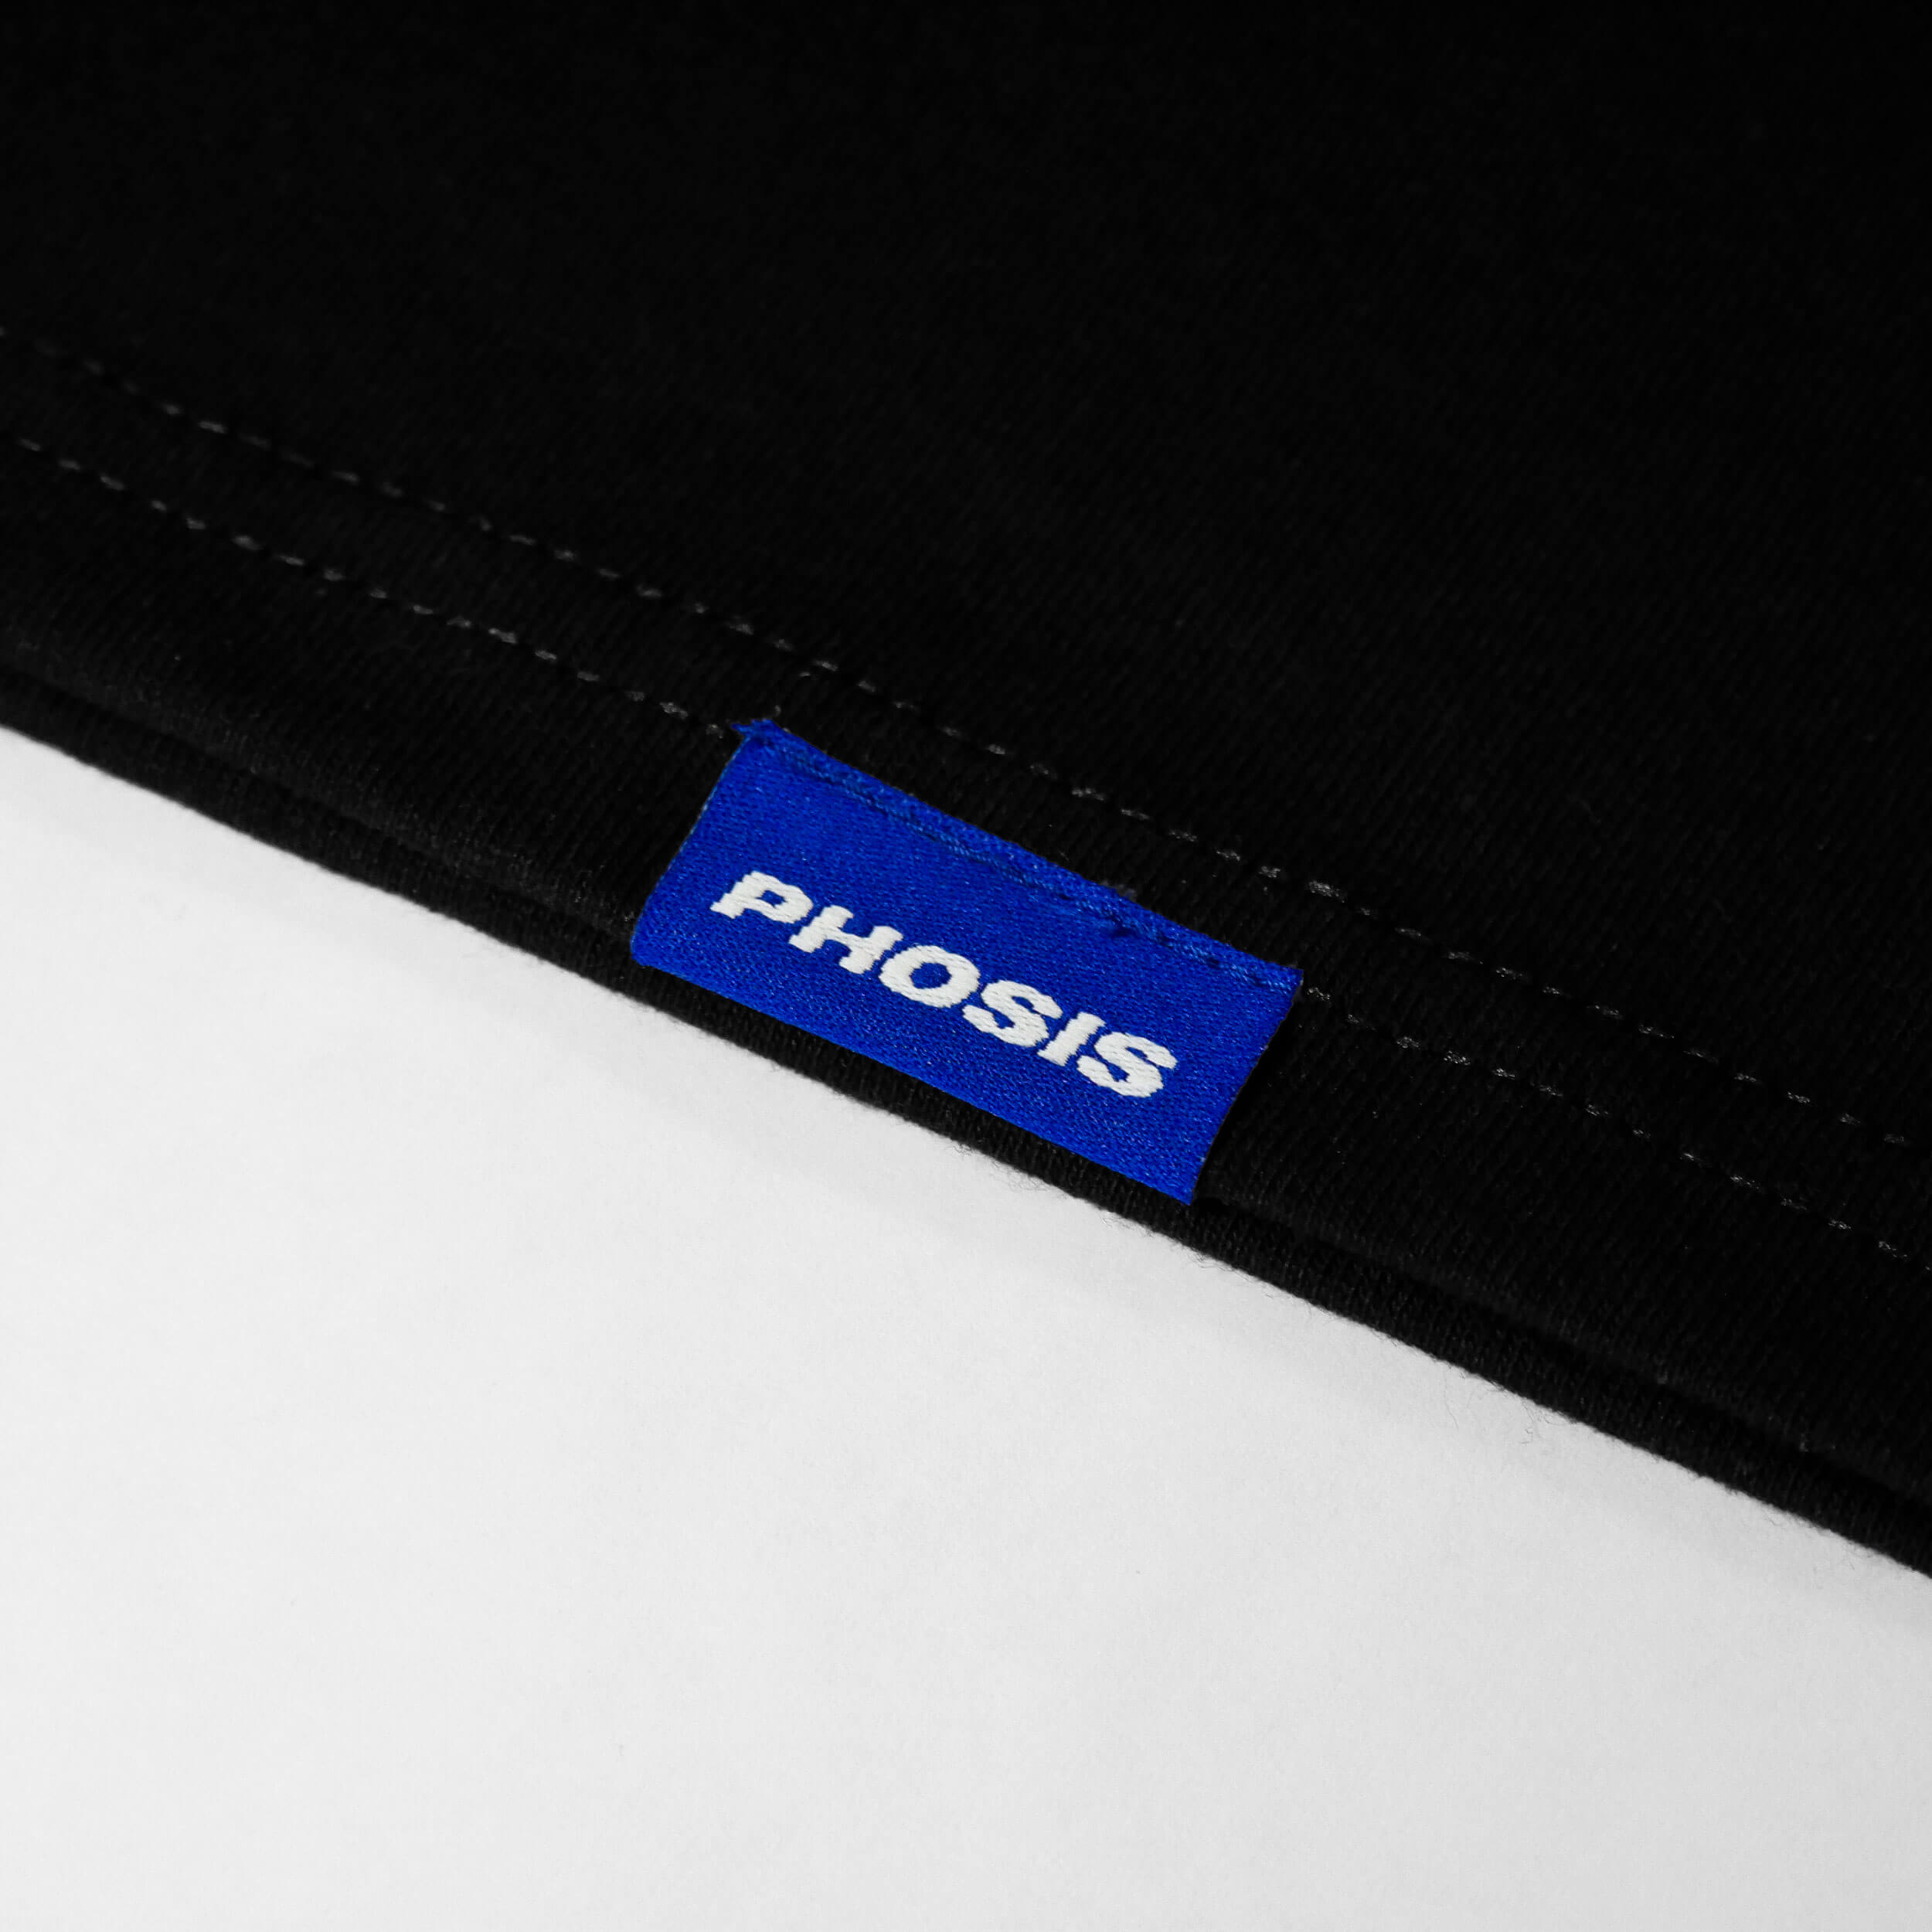 Close up view of the blue woven label in the POLYMER black long sleeve from PHOSIS Clothing